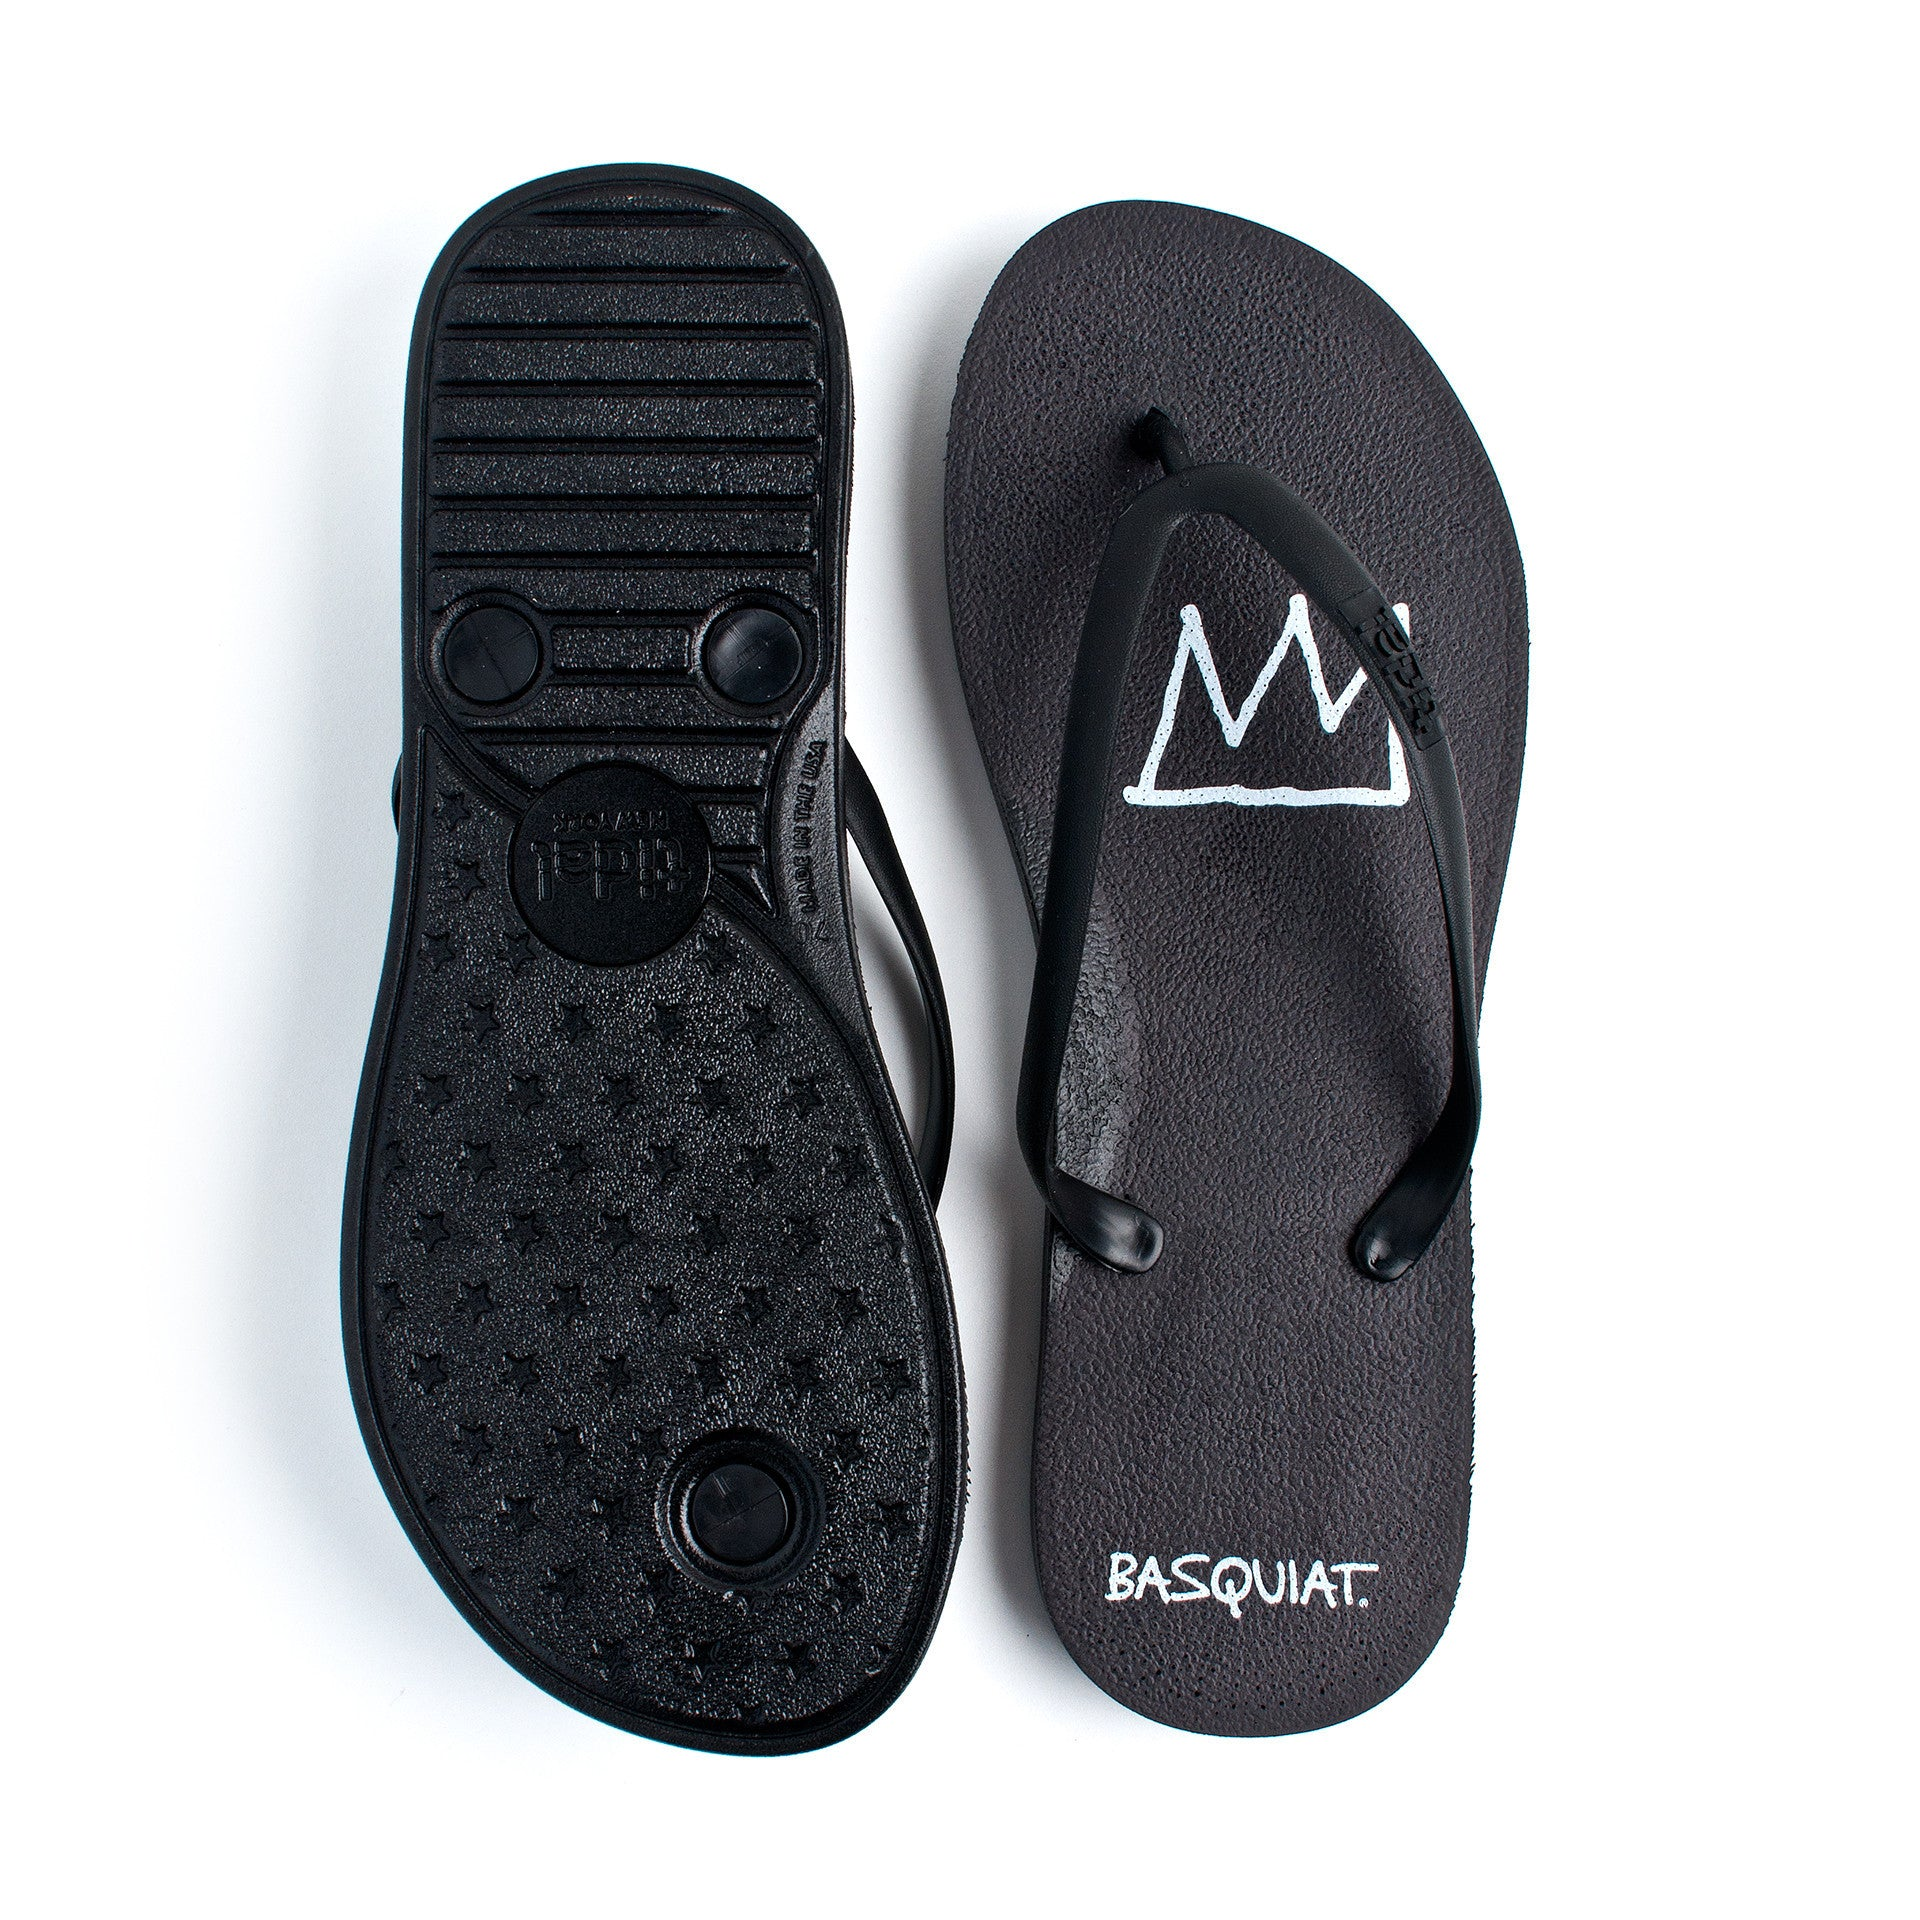 Tidal - Jean-Michel Basquiat Crown Women's Flip Flops, Black/Black - The Giant Peach - 2